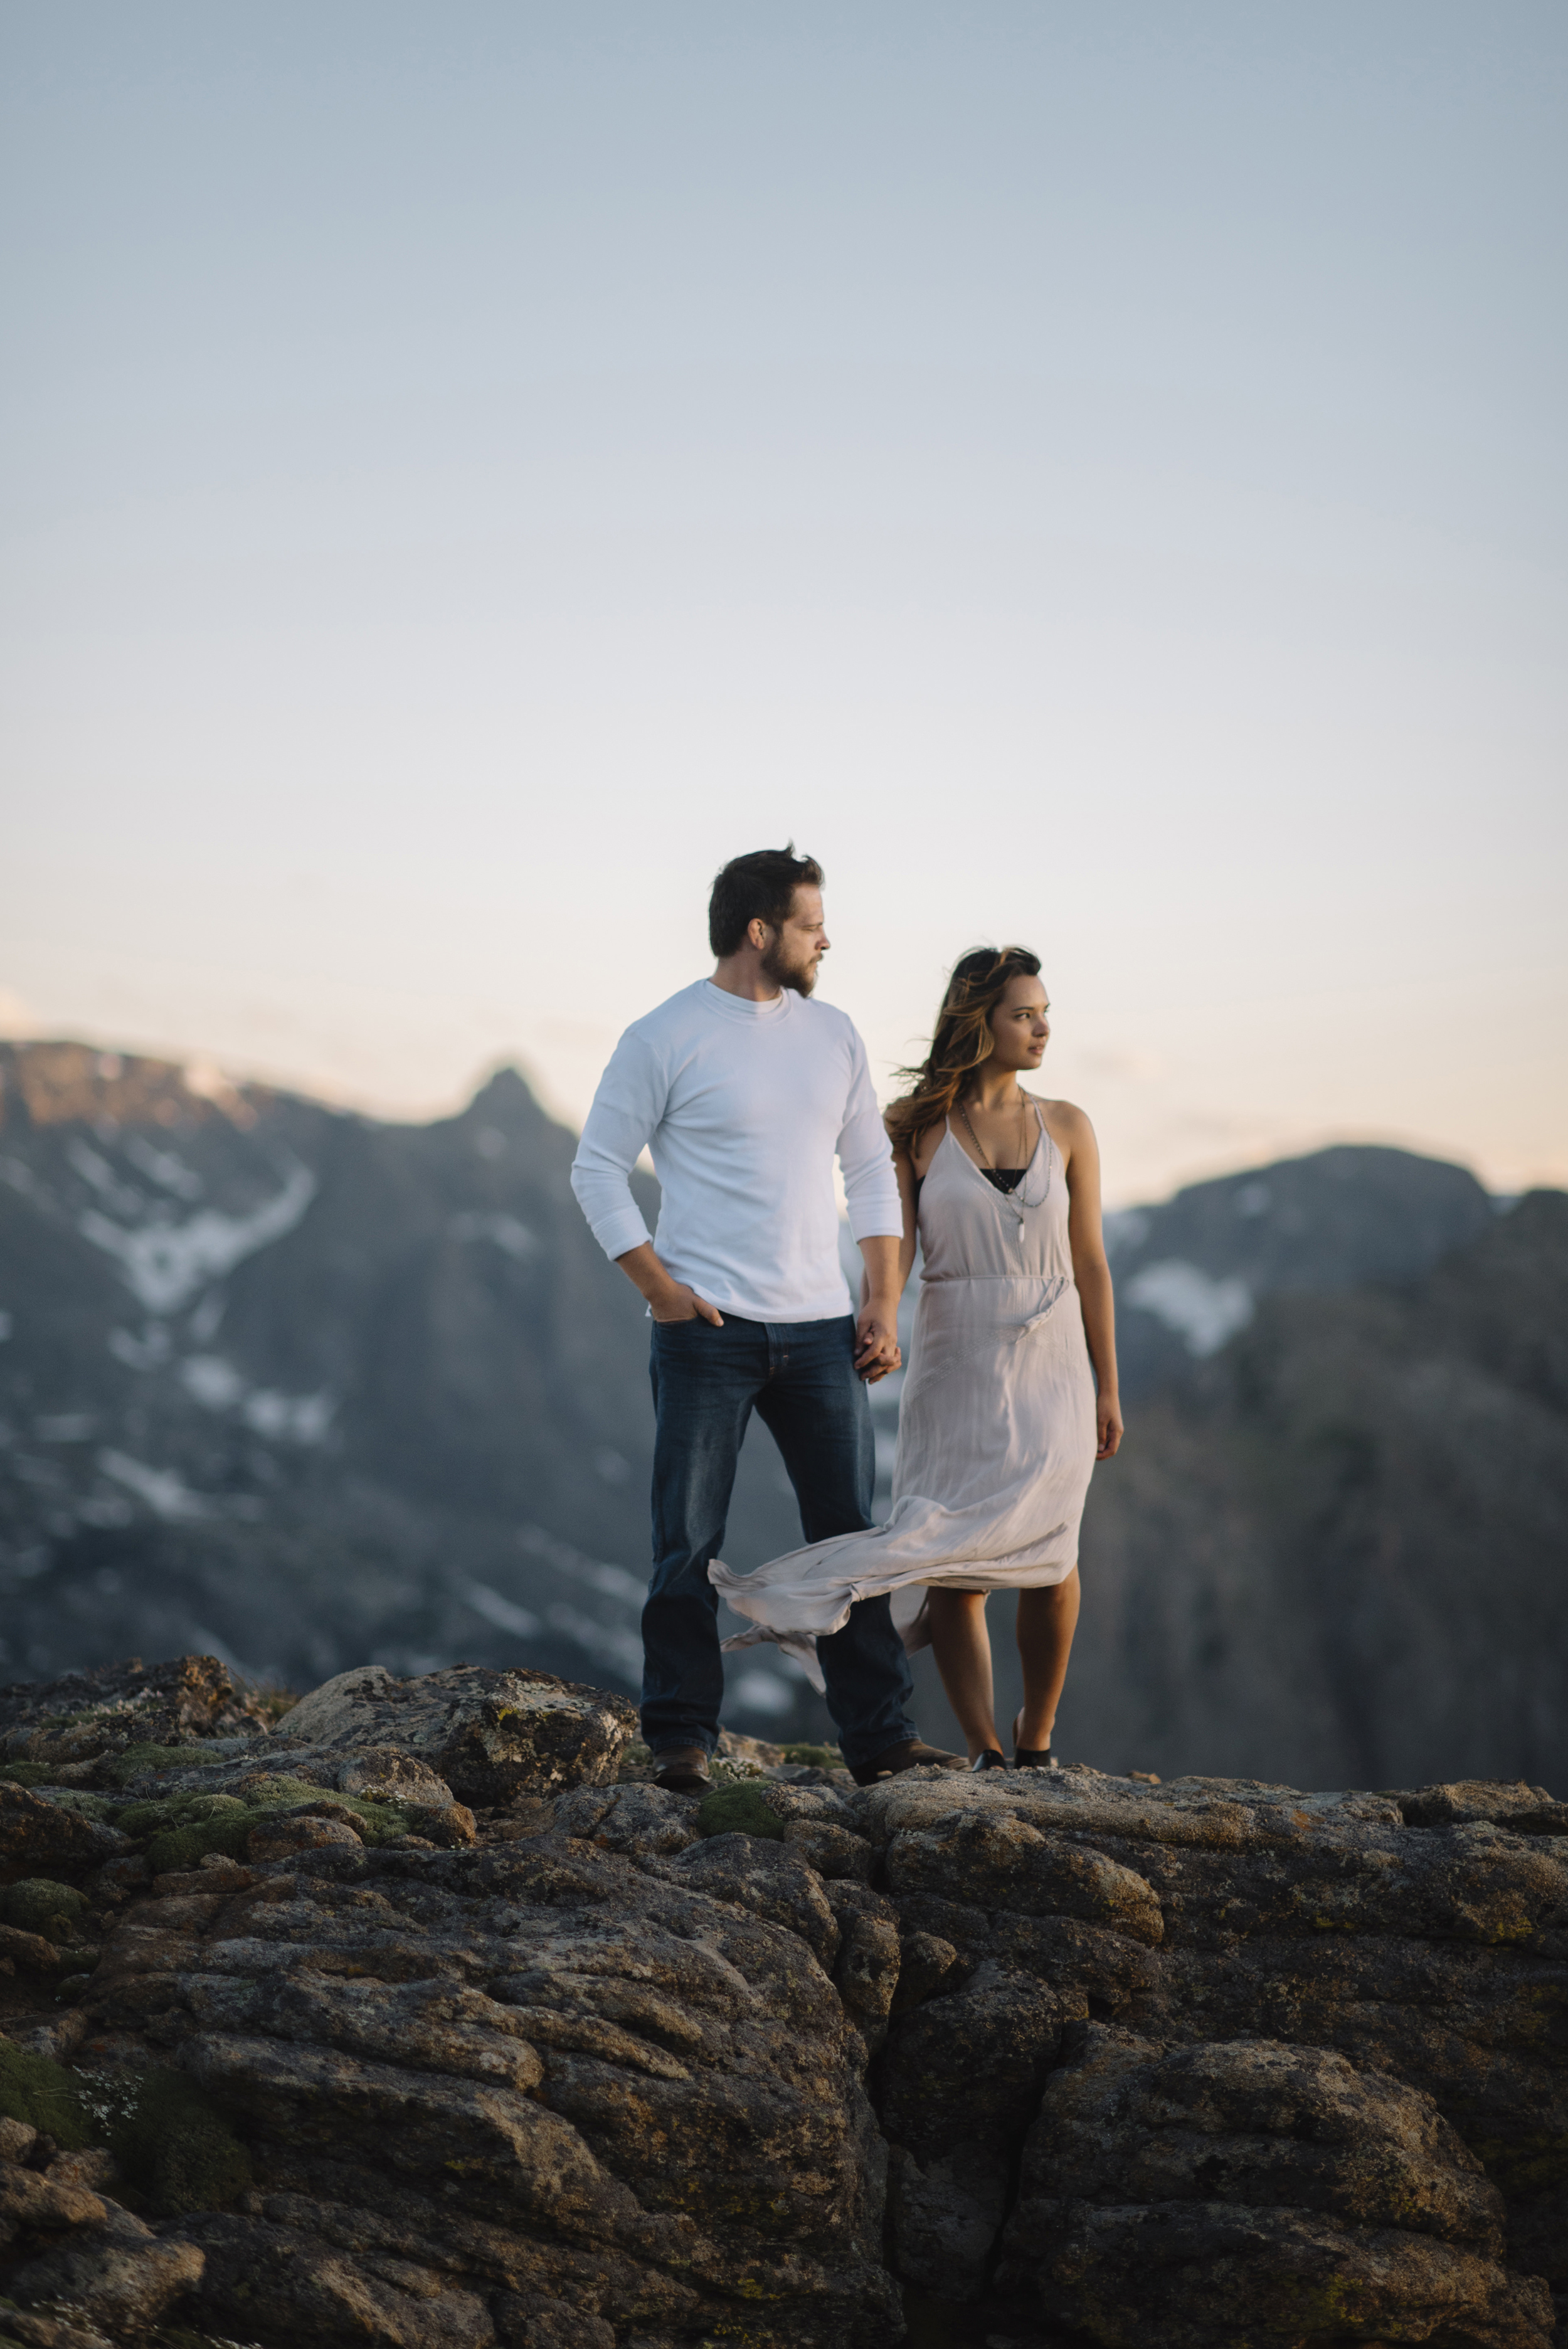 Rocky Mountain National Park Colorado Adventure Engagement Photographer86.jpg